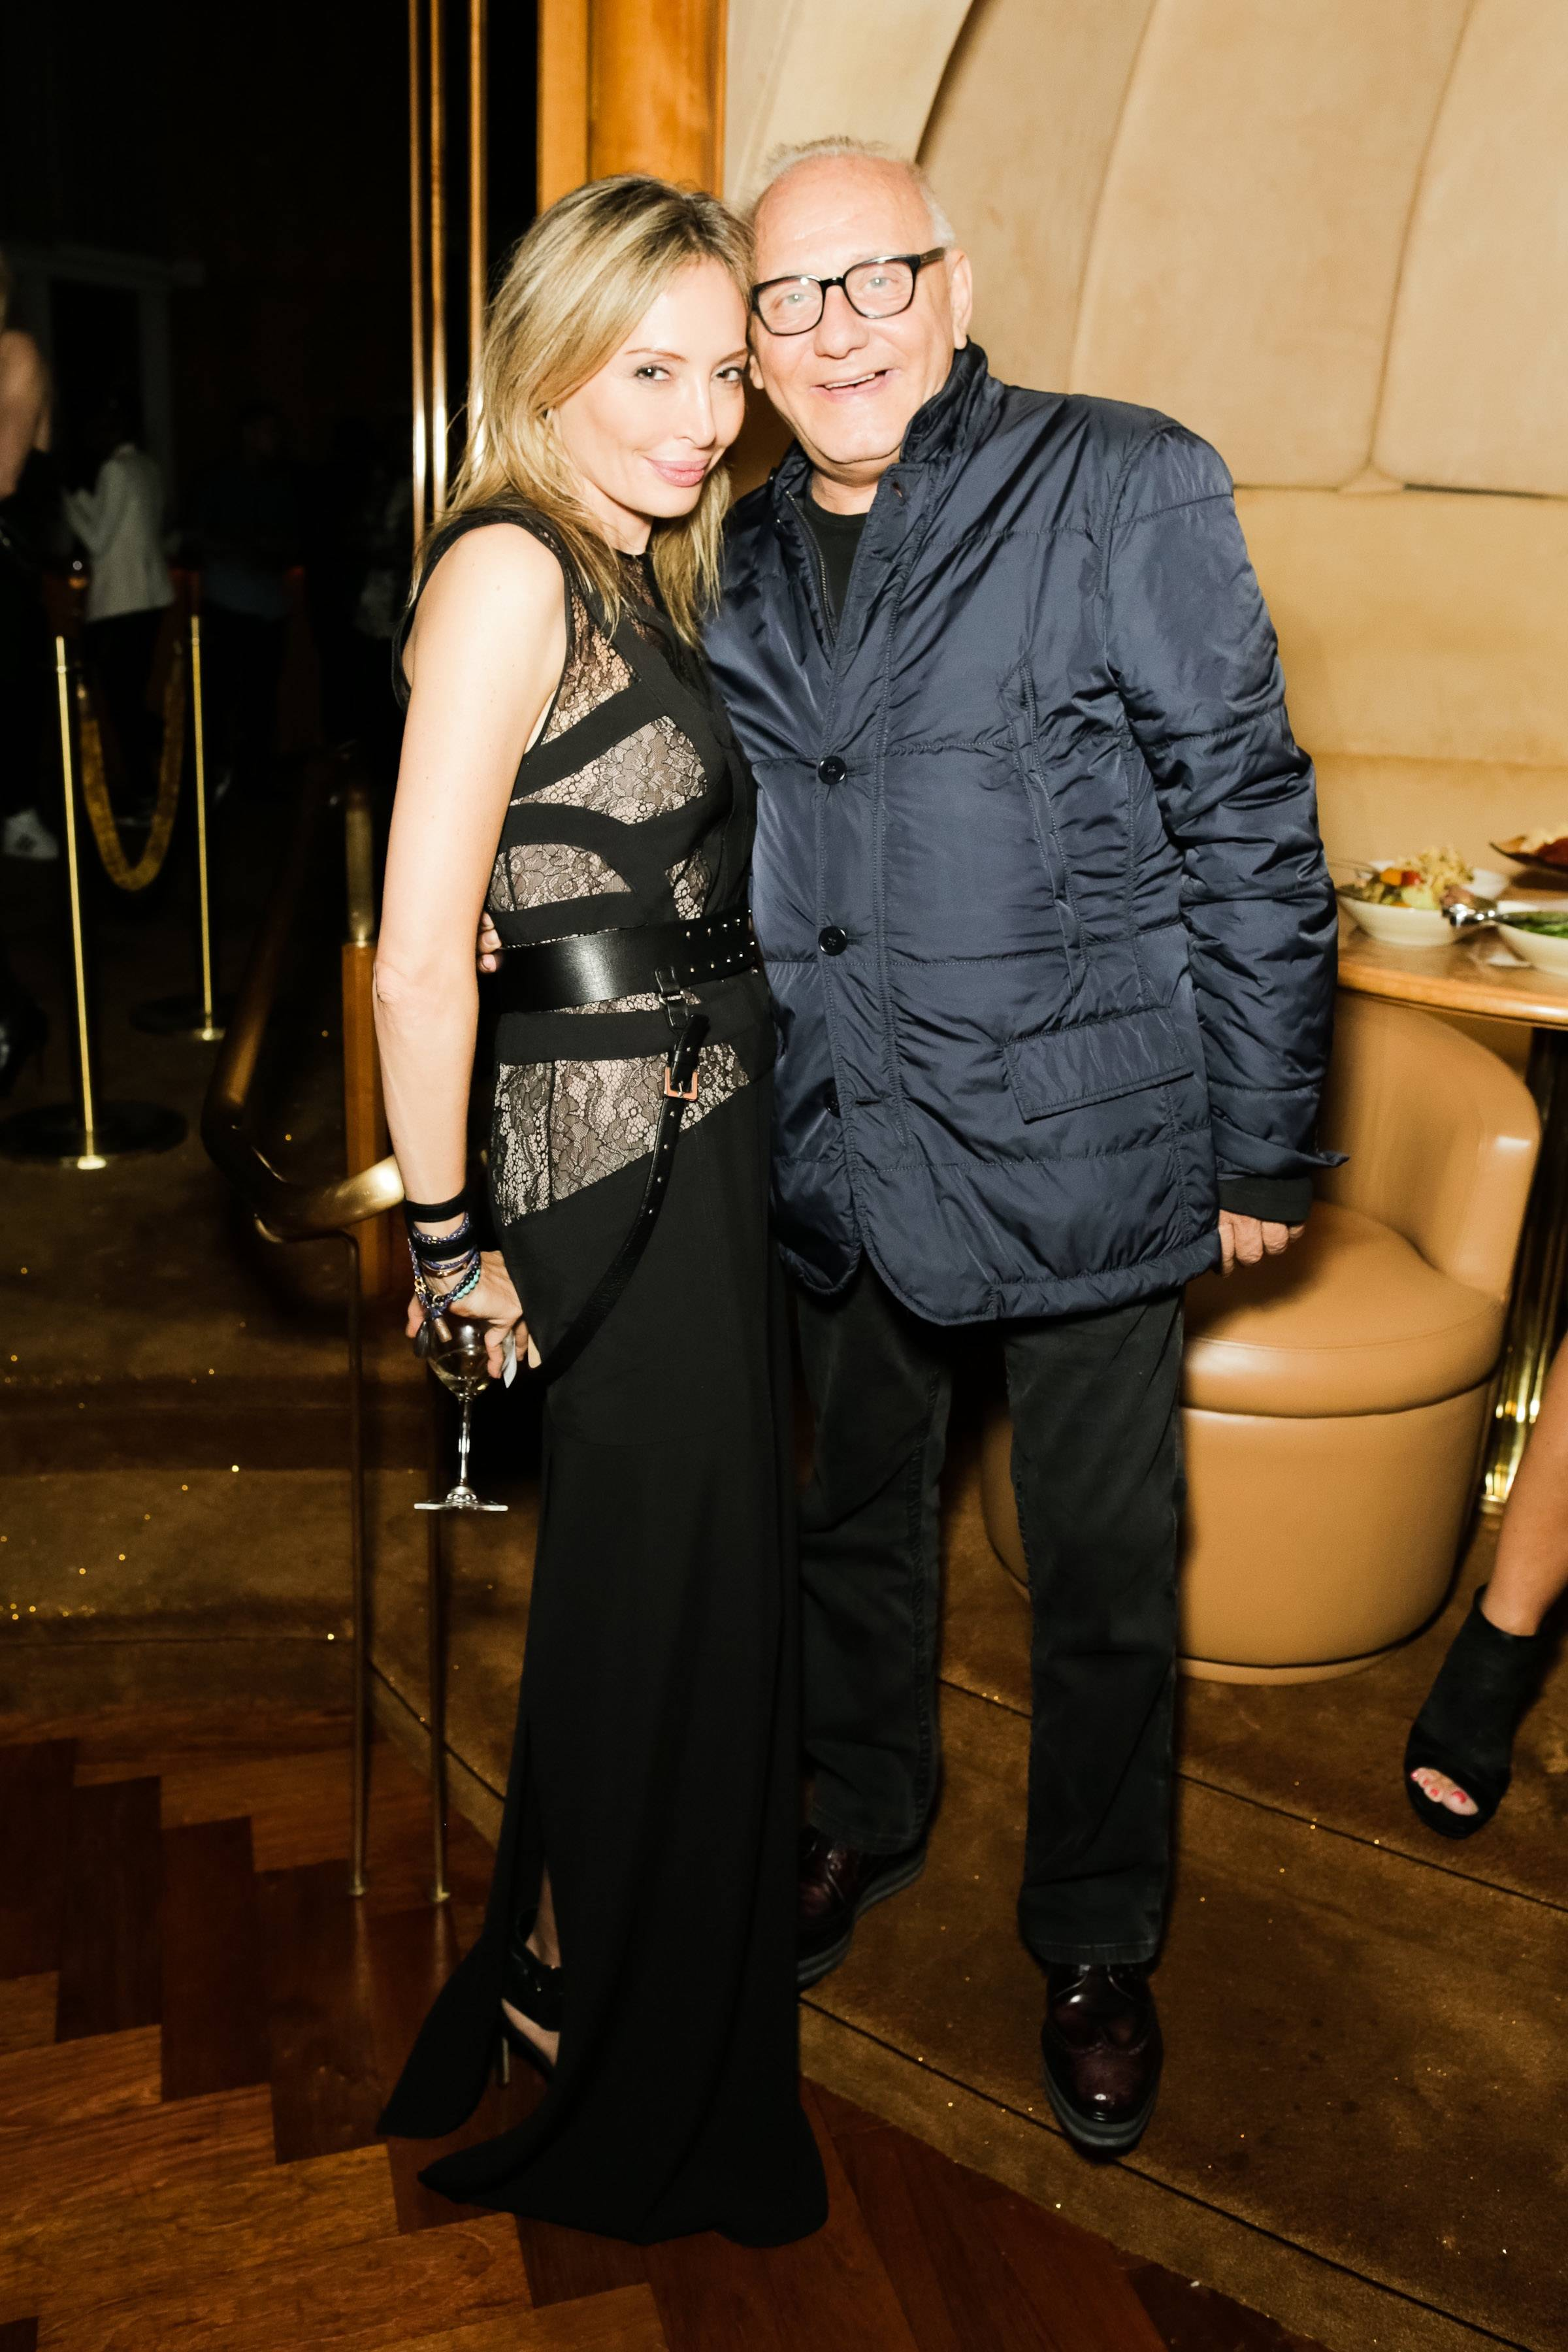 Exclusive Afterparty in celebration of the Spring 2013 Runway Collections of BCBGMAXAZRIA RUNWAY and Hervé Léger by Max Azria